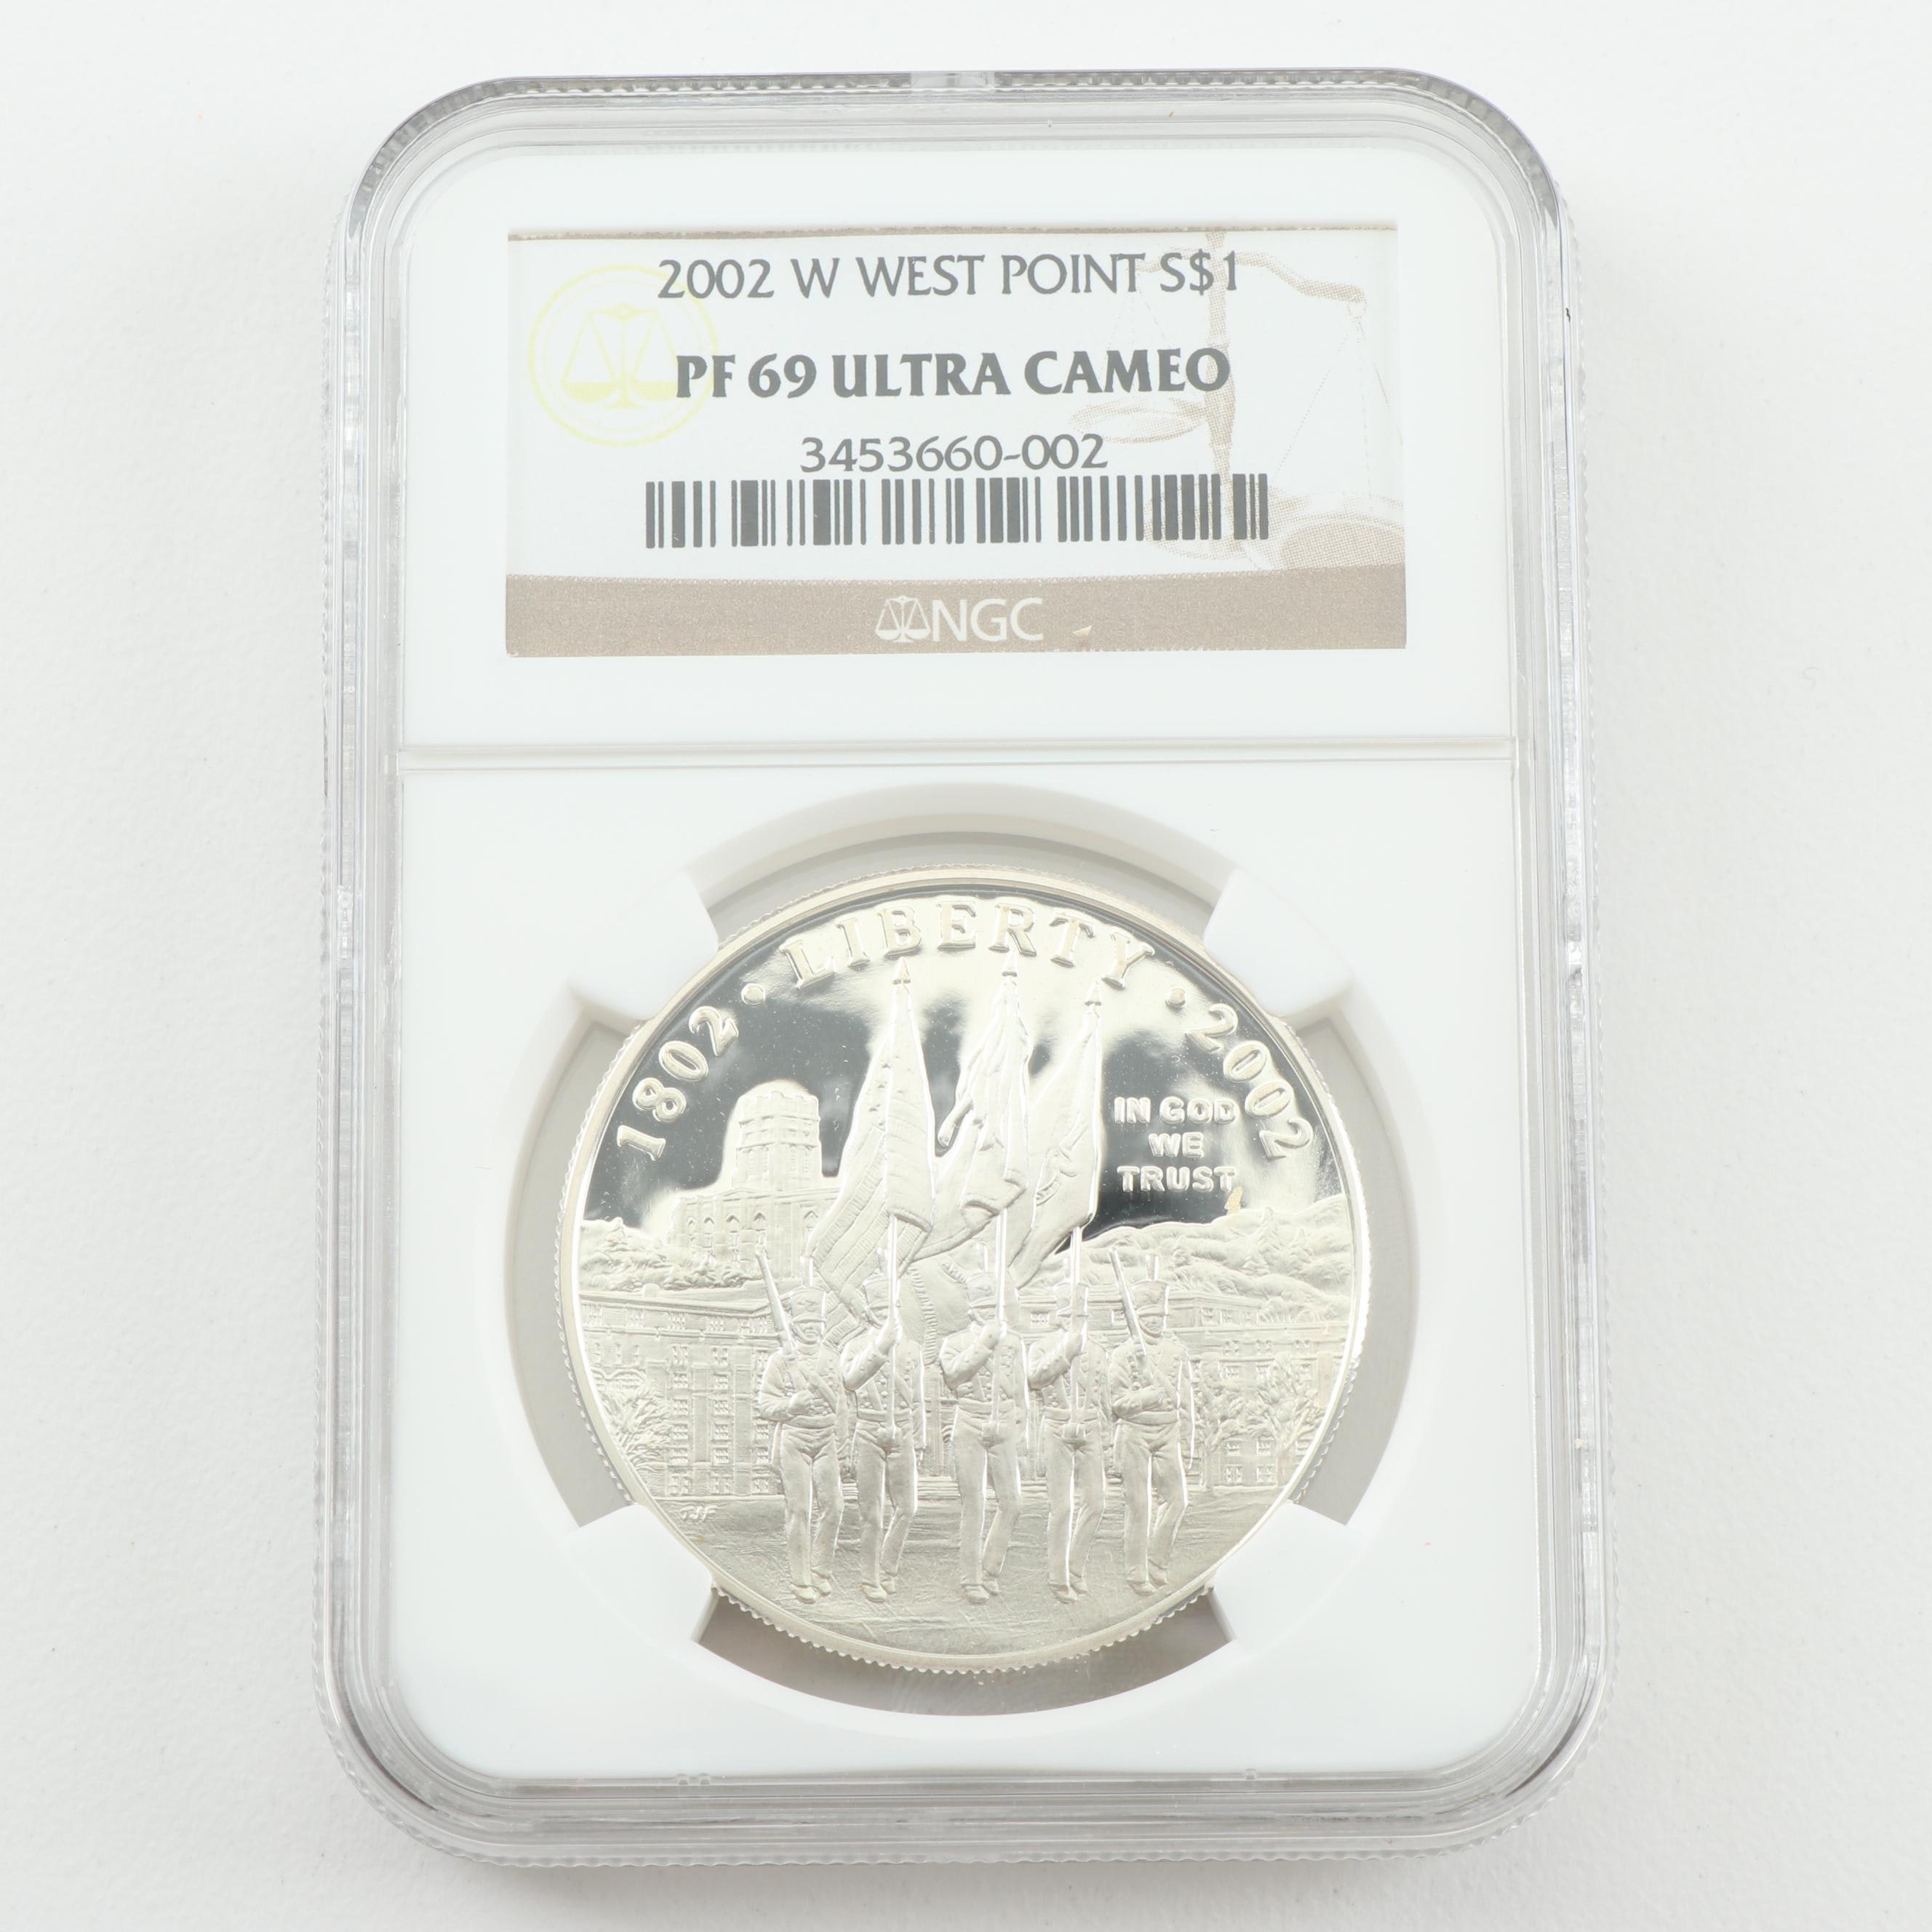 NGC Graded PF 69 Ultra Cameo 2002-W West Point $1 Proof Coin